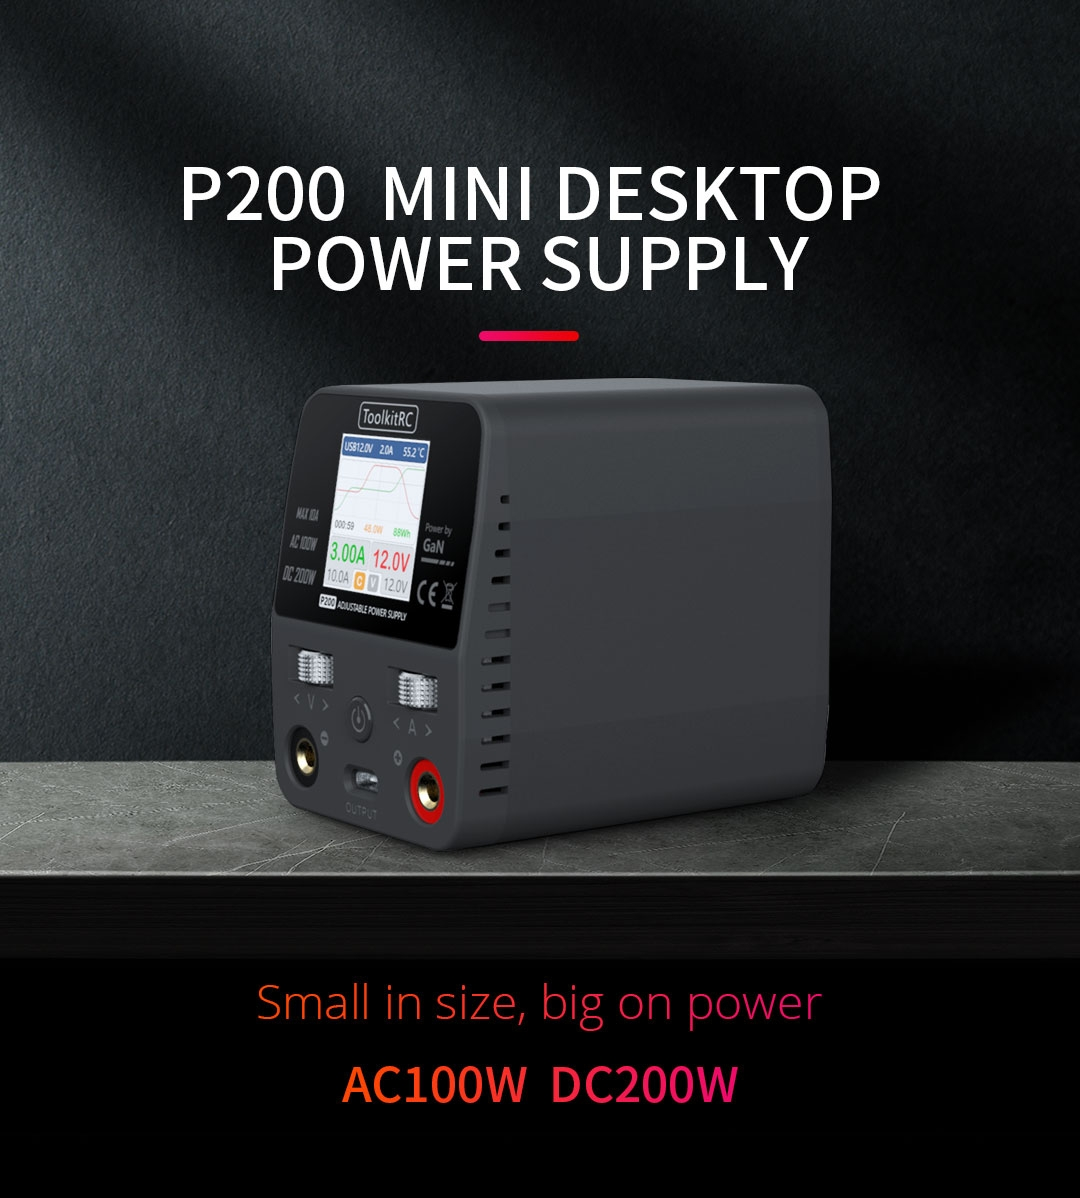 $92.99 ToolkitRC P200 Mini 30V AC100W DC200W 10A GaN Adjustable Mini Desktop Power Supply